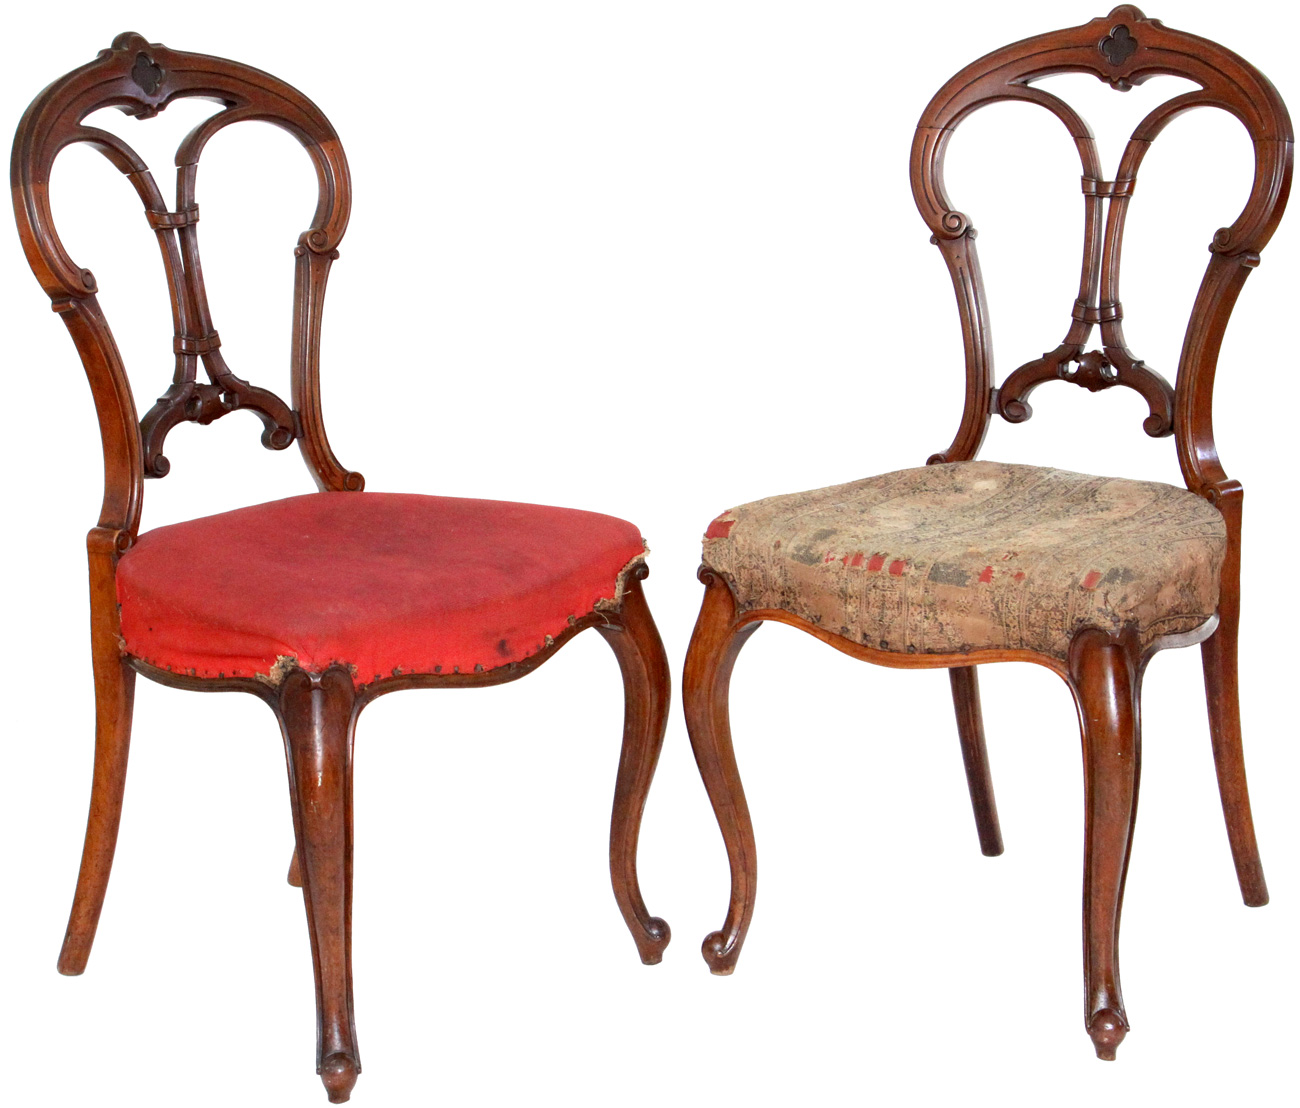 Antique victorian armchair - 2 Antique Victorian Balloon Back Chairs Carved And Upholstered Click To Zoom